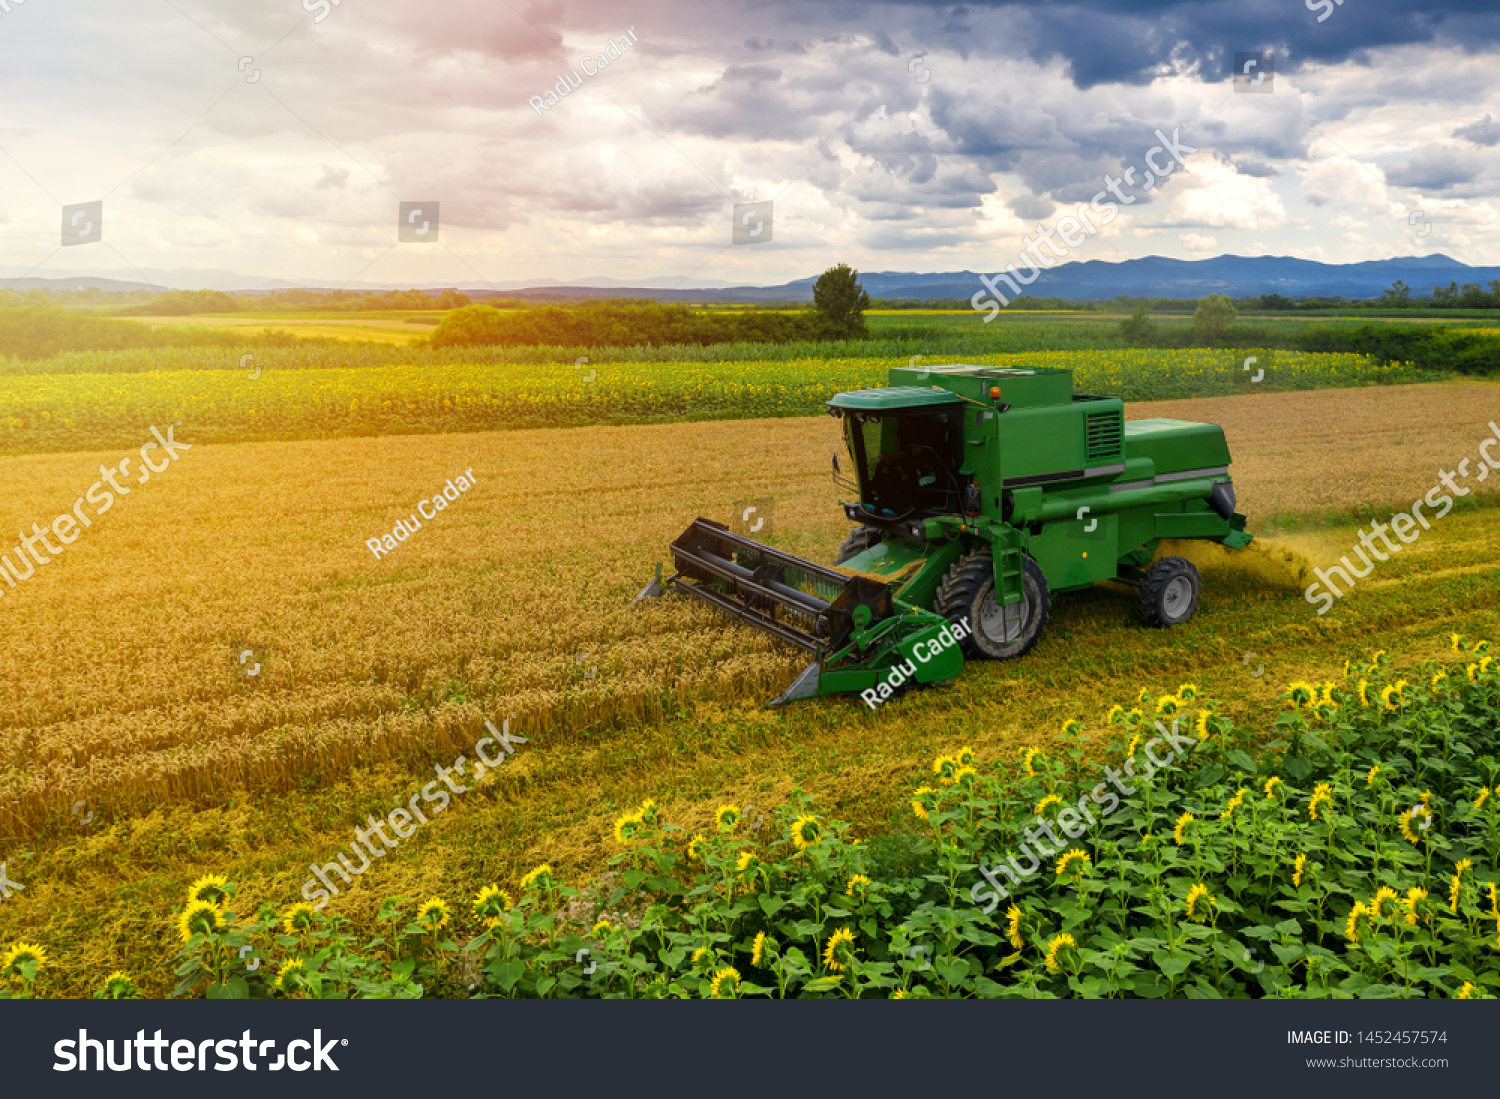 Harvester machine to harvest wheat field working. Combine harvester agriculture machine harvesting golden ripe wheat field. Agriculture aerial view